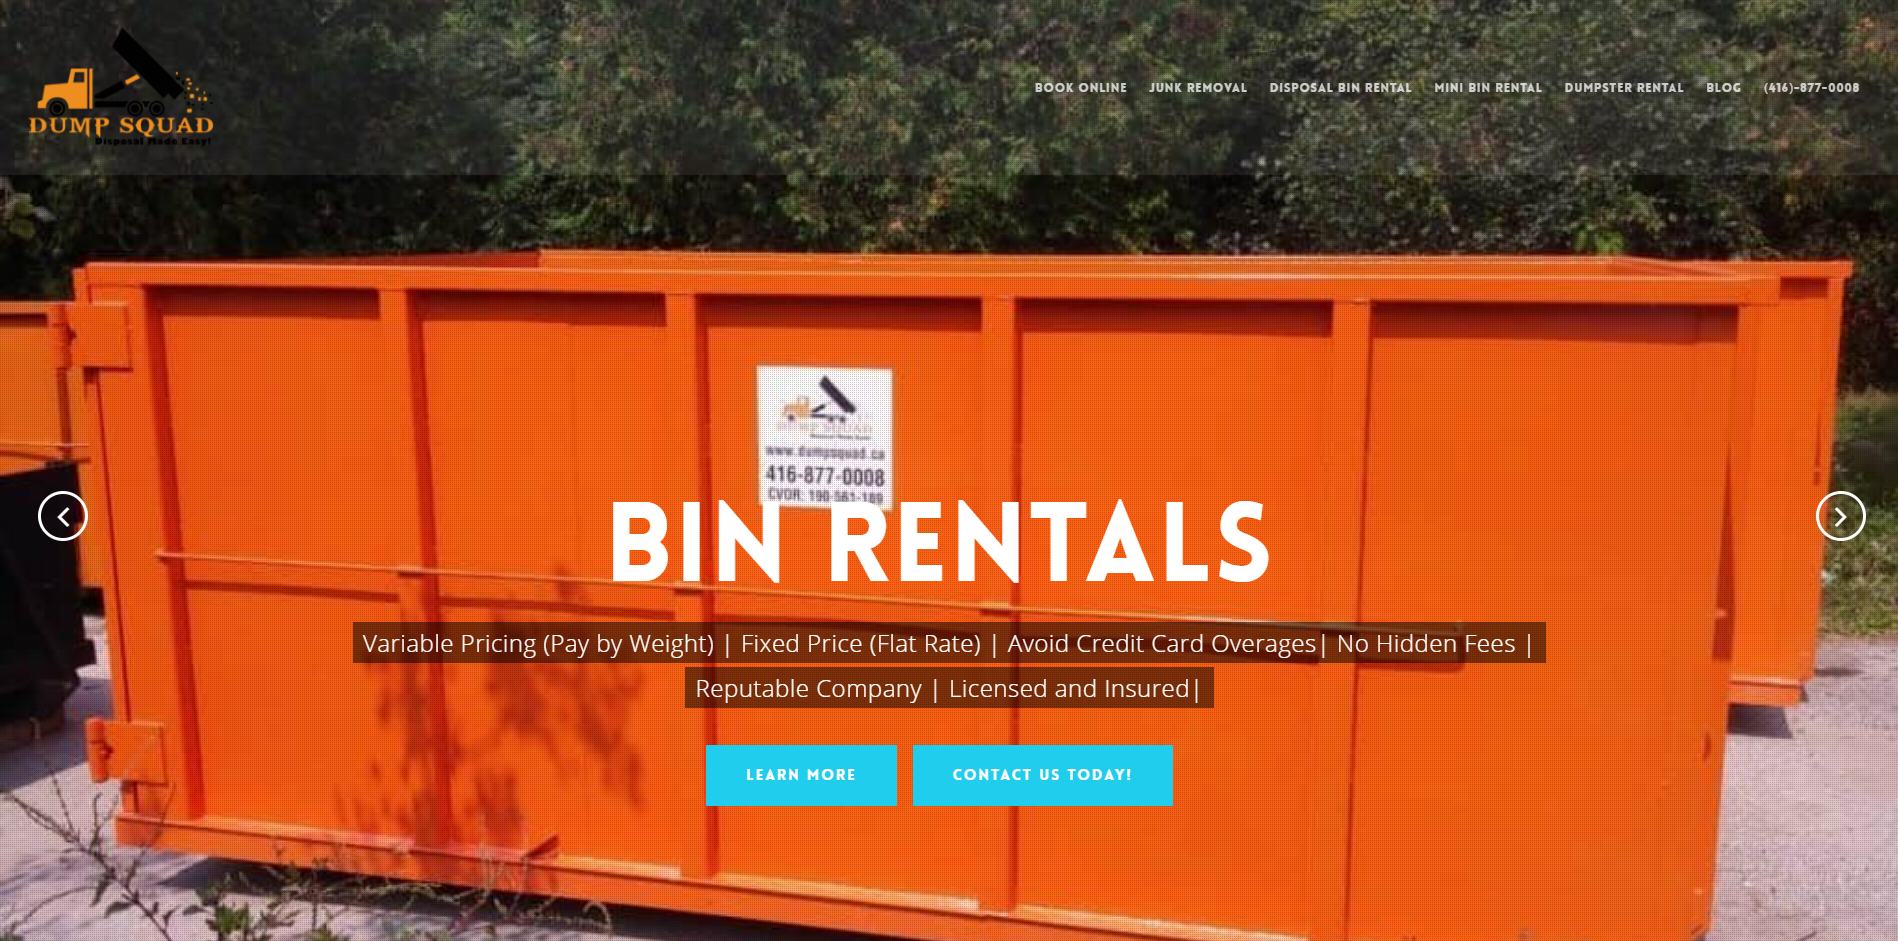 Garbage-Bin-Rental-Dumpster-Rental-Bin-Rental-in-Toronto-and-the-GTA